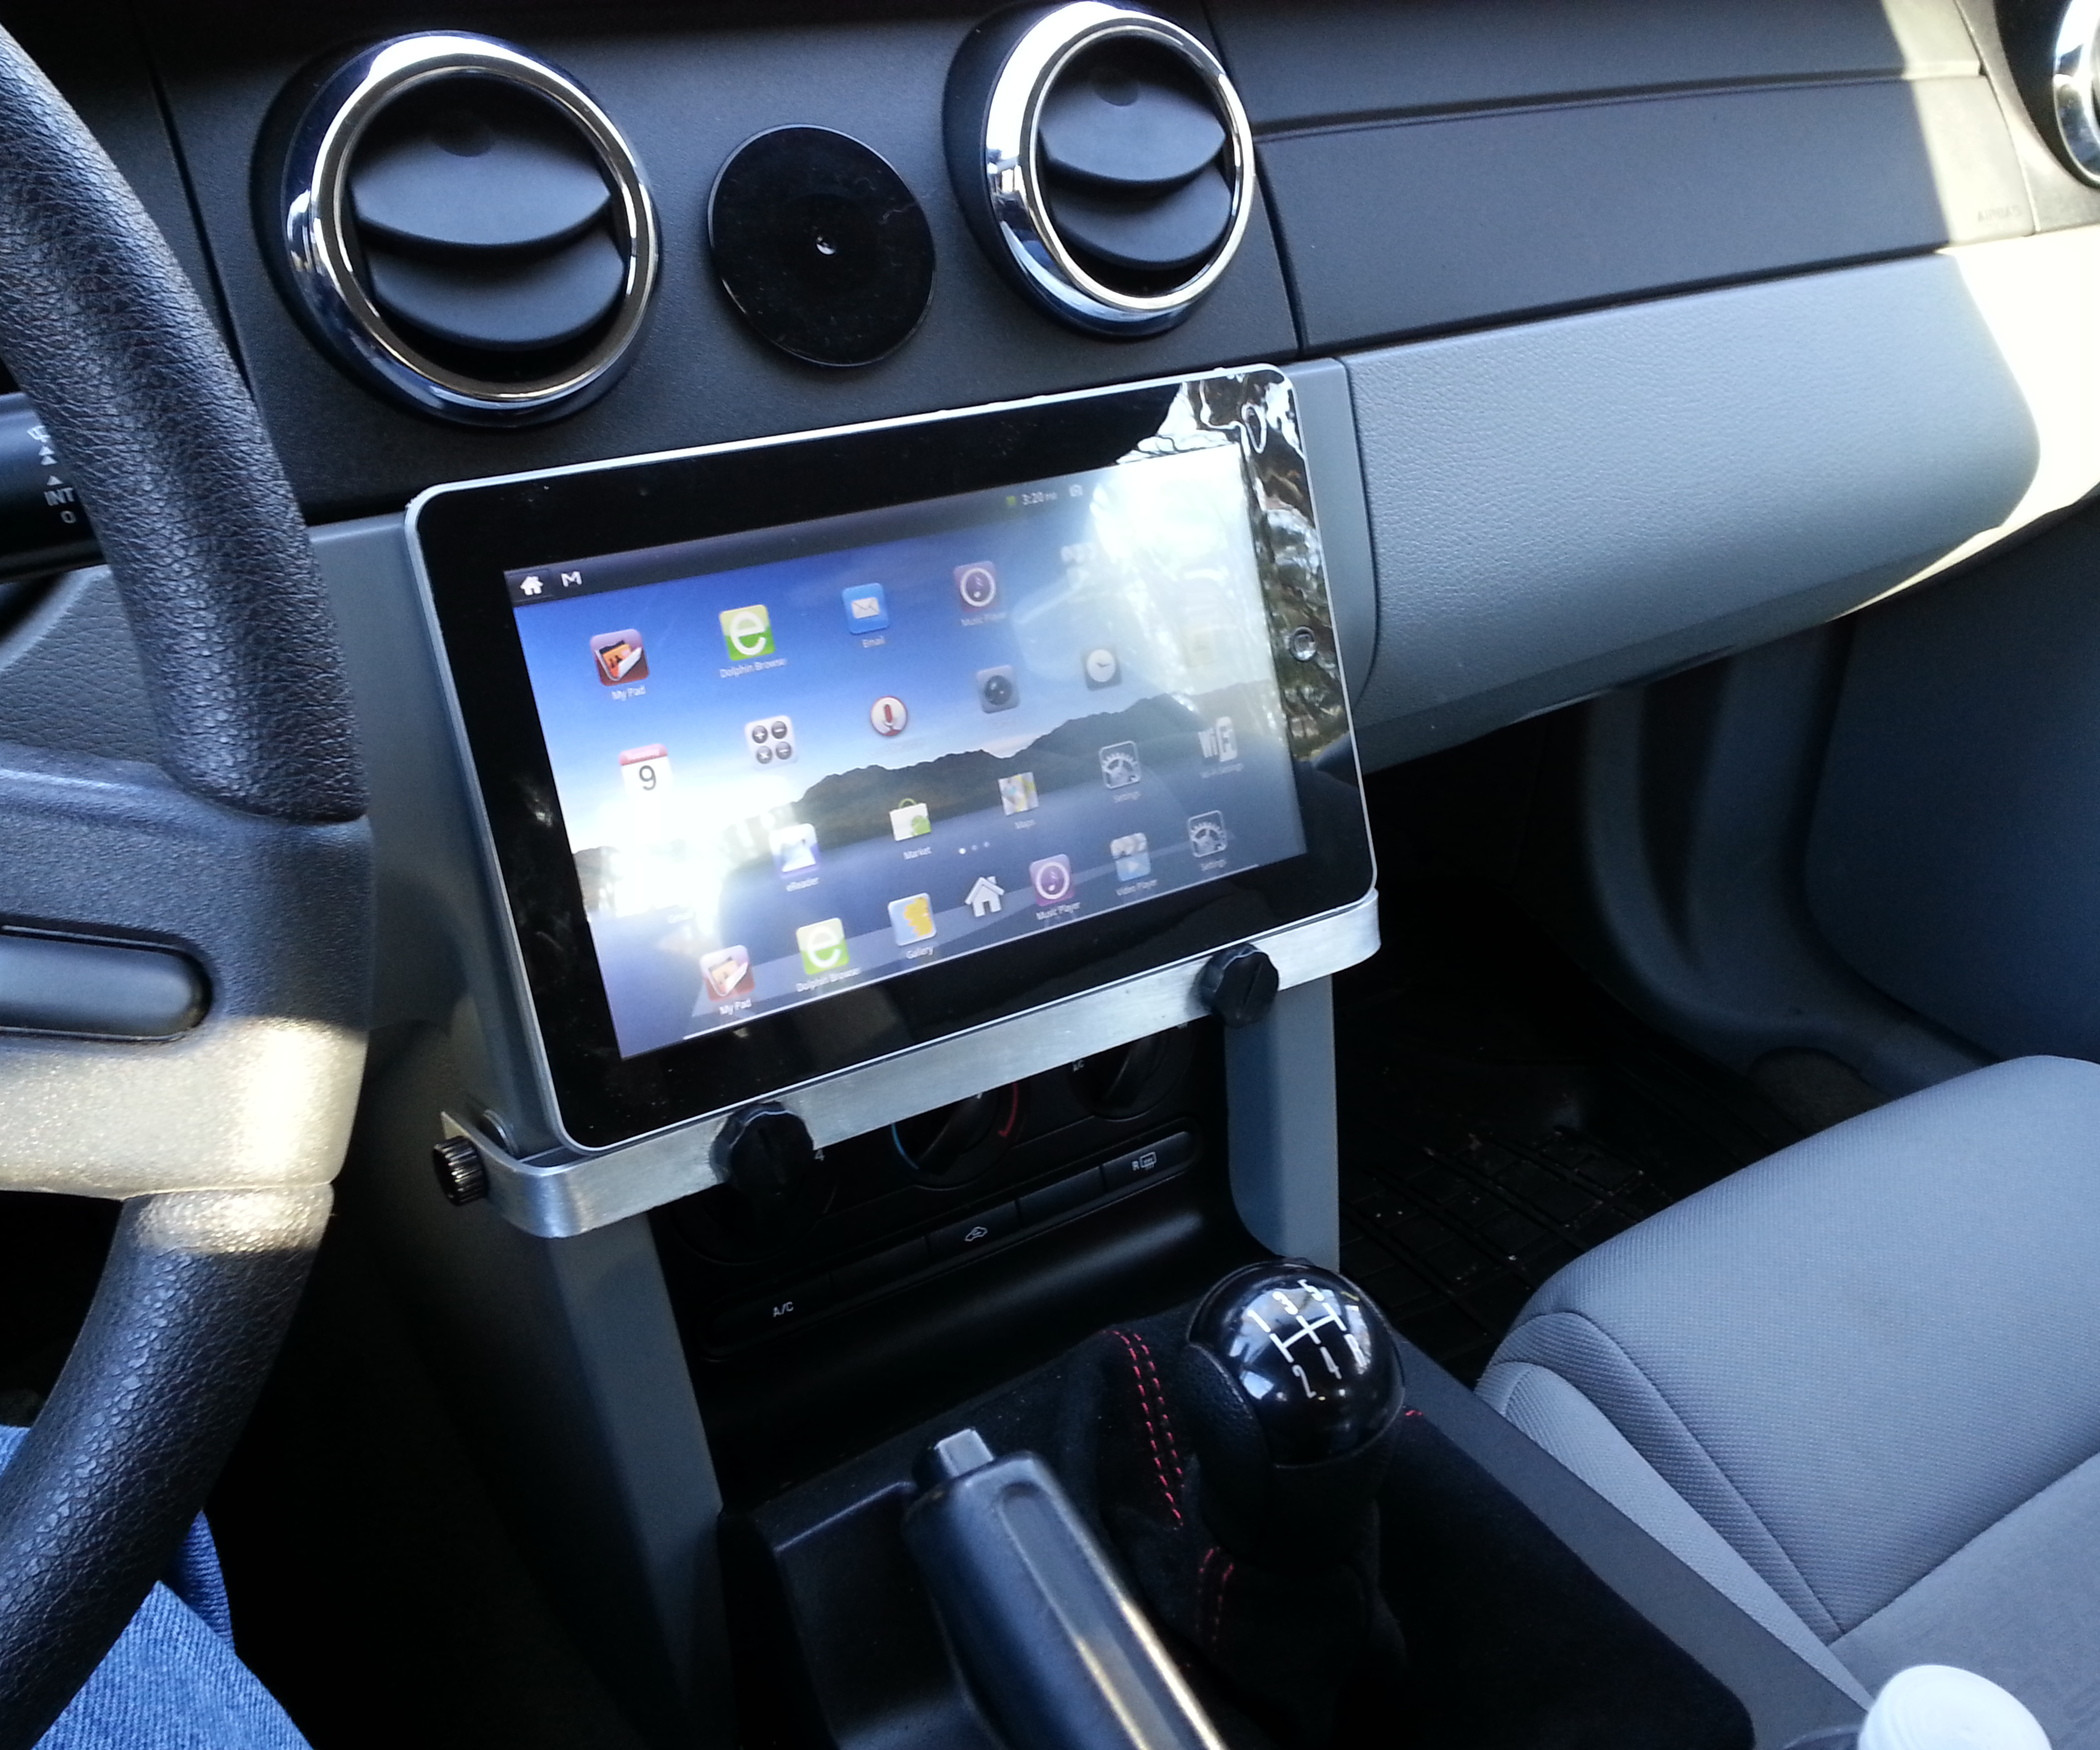 Best ideas about DIY Tablet Headrest Mount . Save or Pin Car Tablet Mount Easy and Cheap All Now.